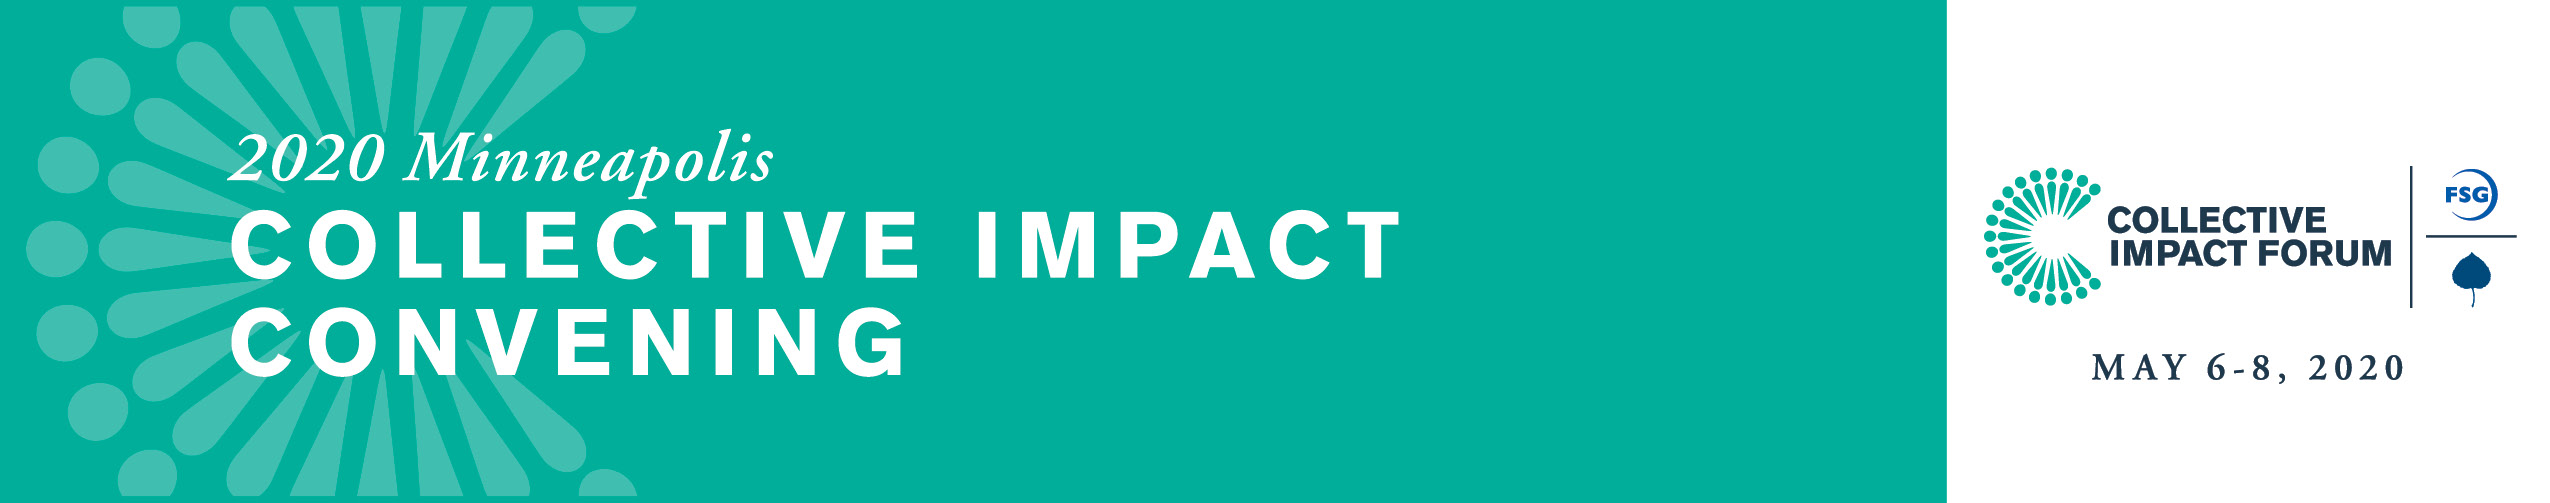 2020 Collective Impact Convening